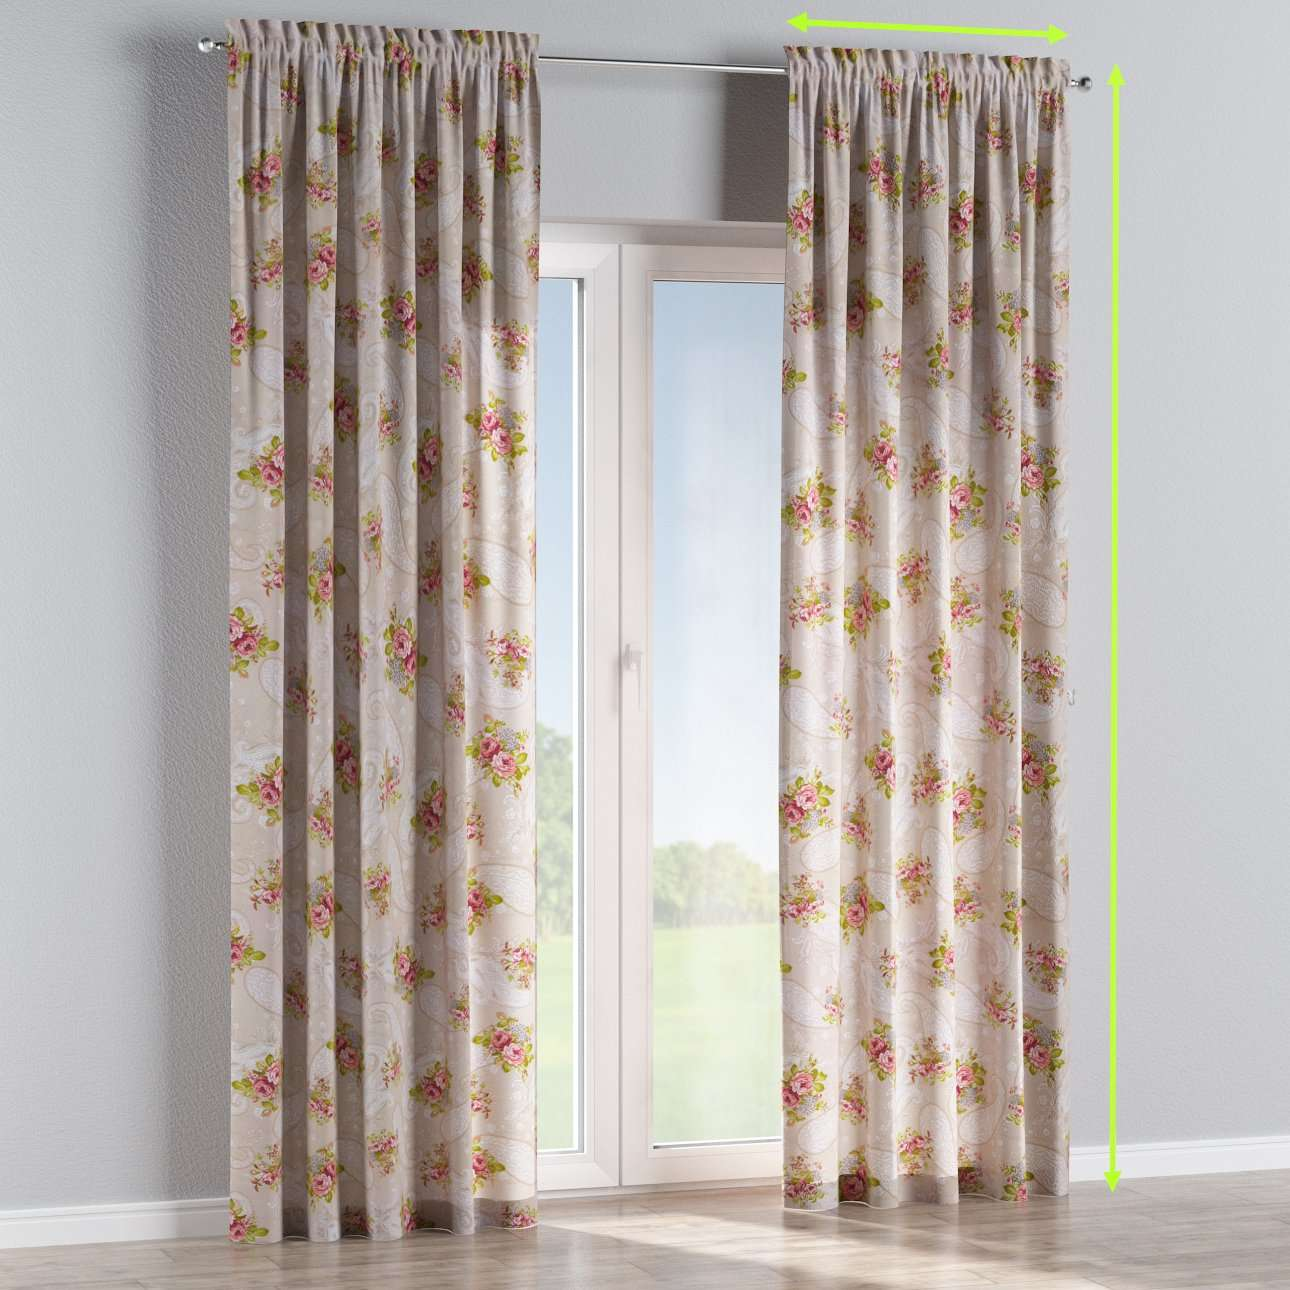 Slot and frill lined curtains in collection Flowers, fabric: 311-15